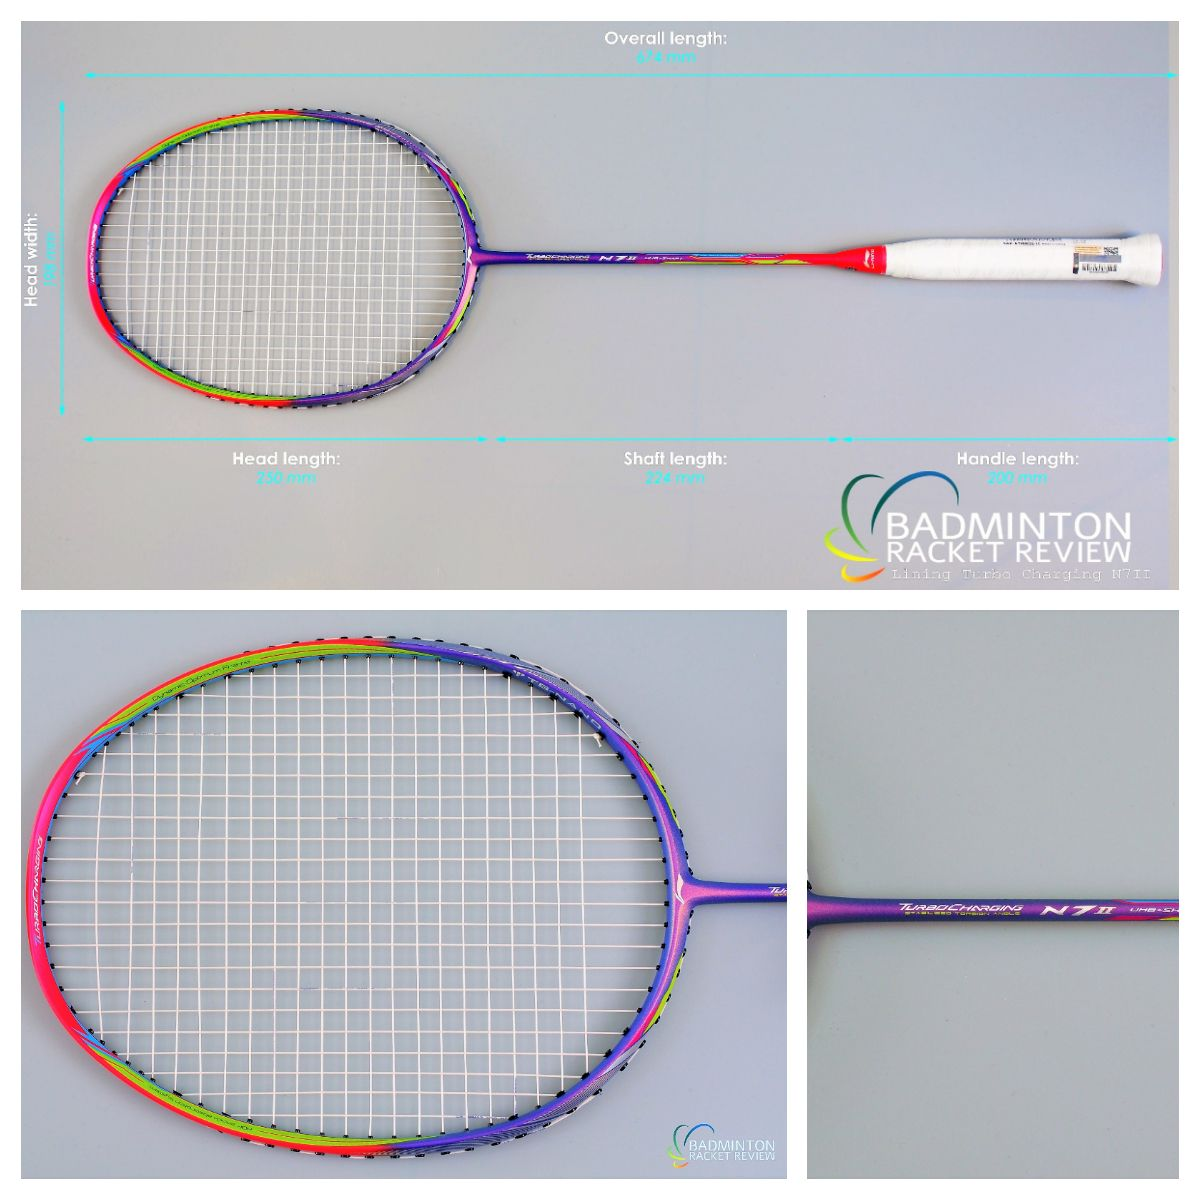 9f45c8a3d8c Li-Ning Turbo Charging N7ii Badminton Racket Review. To find out about this  racket s